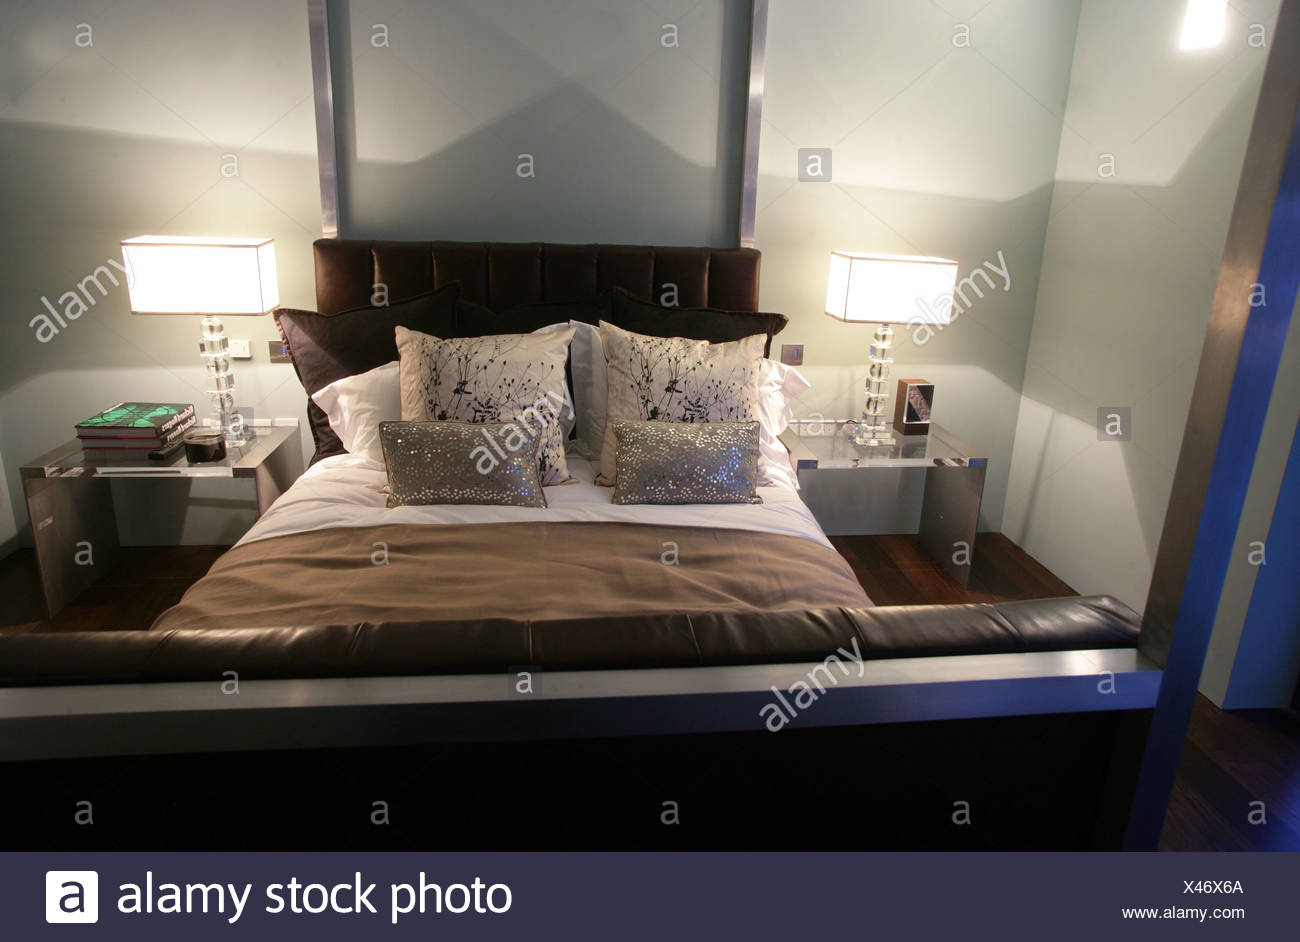 Modernist open plan home in Hampstead, London Master bedroom with four posted bed, cushions and chunky glass bedside lamps - Stock Image